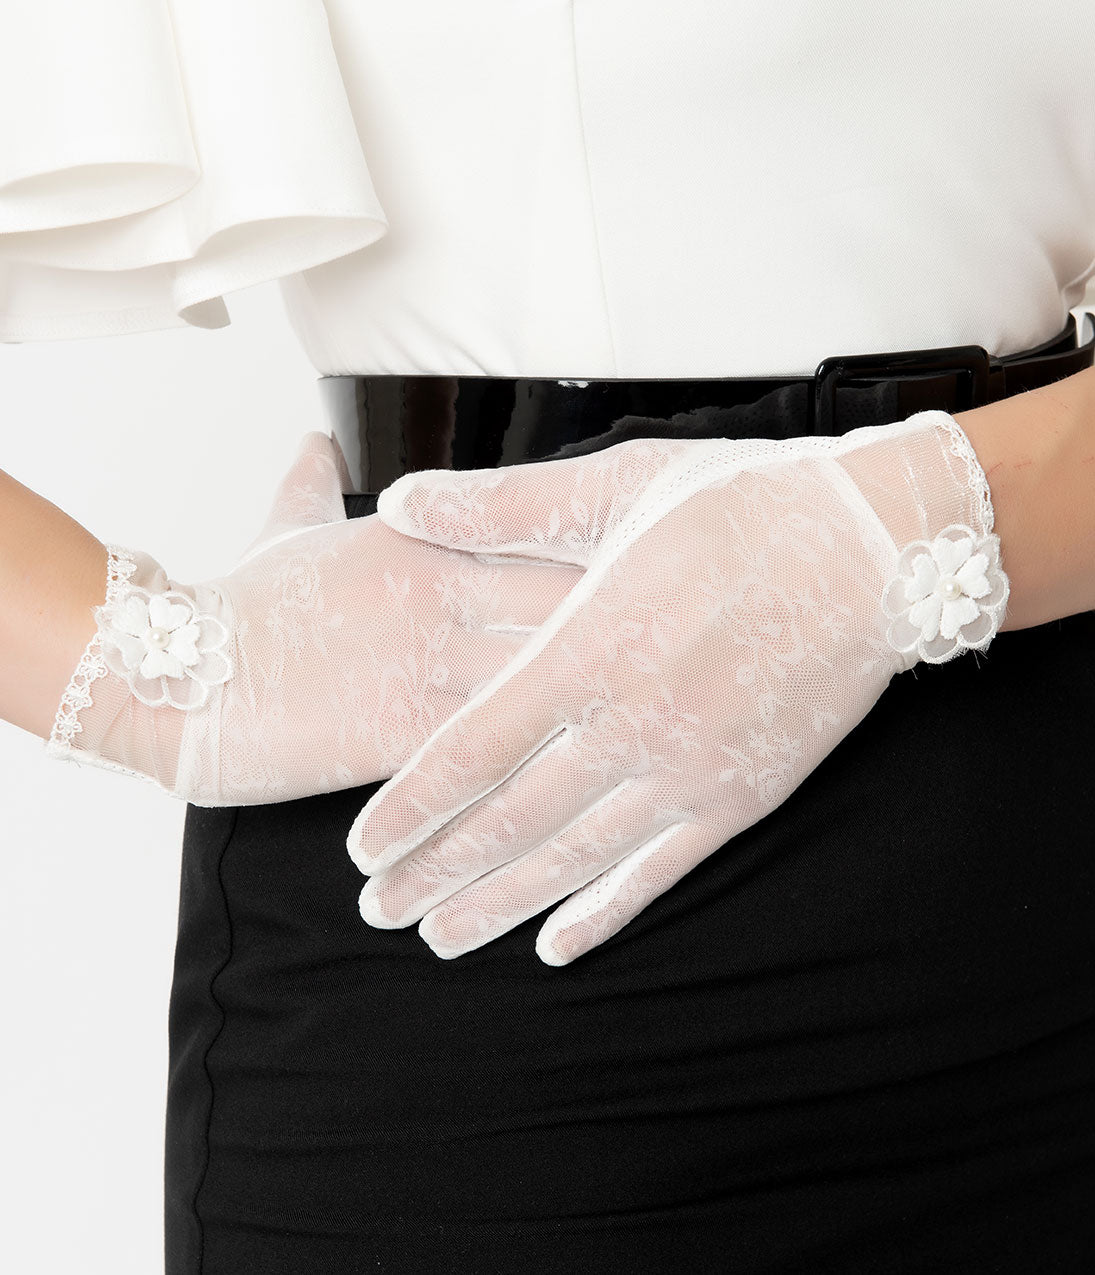 Vintage Style Gloves- Long, Wrist, Evening, Day, Leather, Lace Unique Vintage 1950S Style White Mesh Floral Applique Wrist Gloves $22.00 AT vintagedancer.com